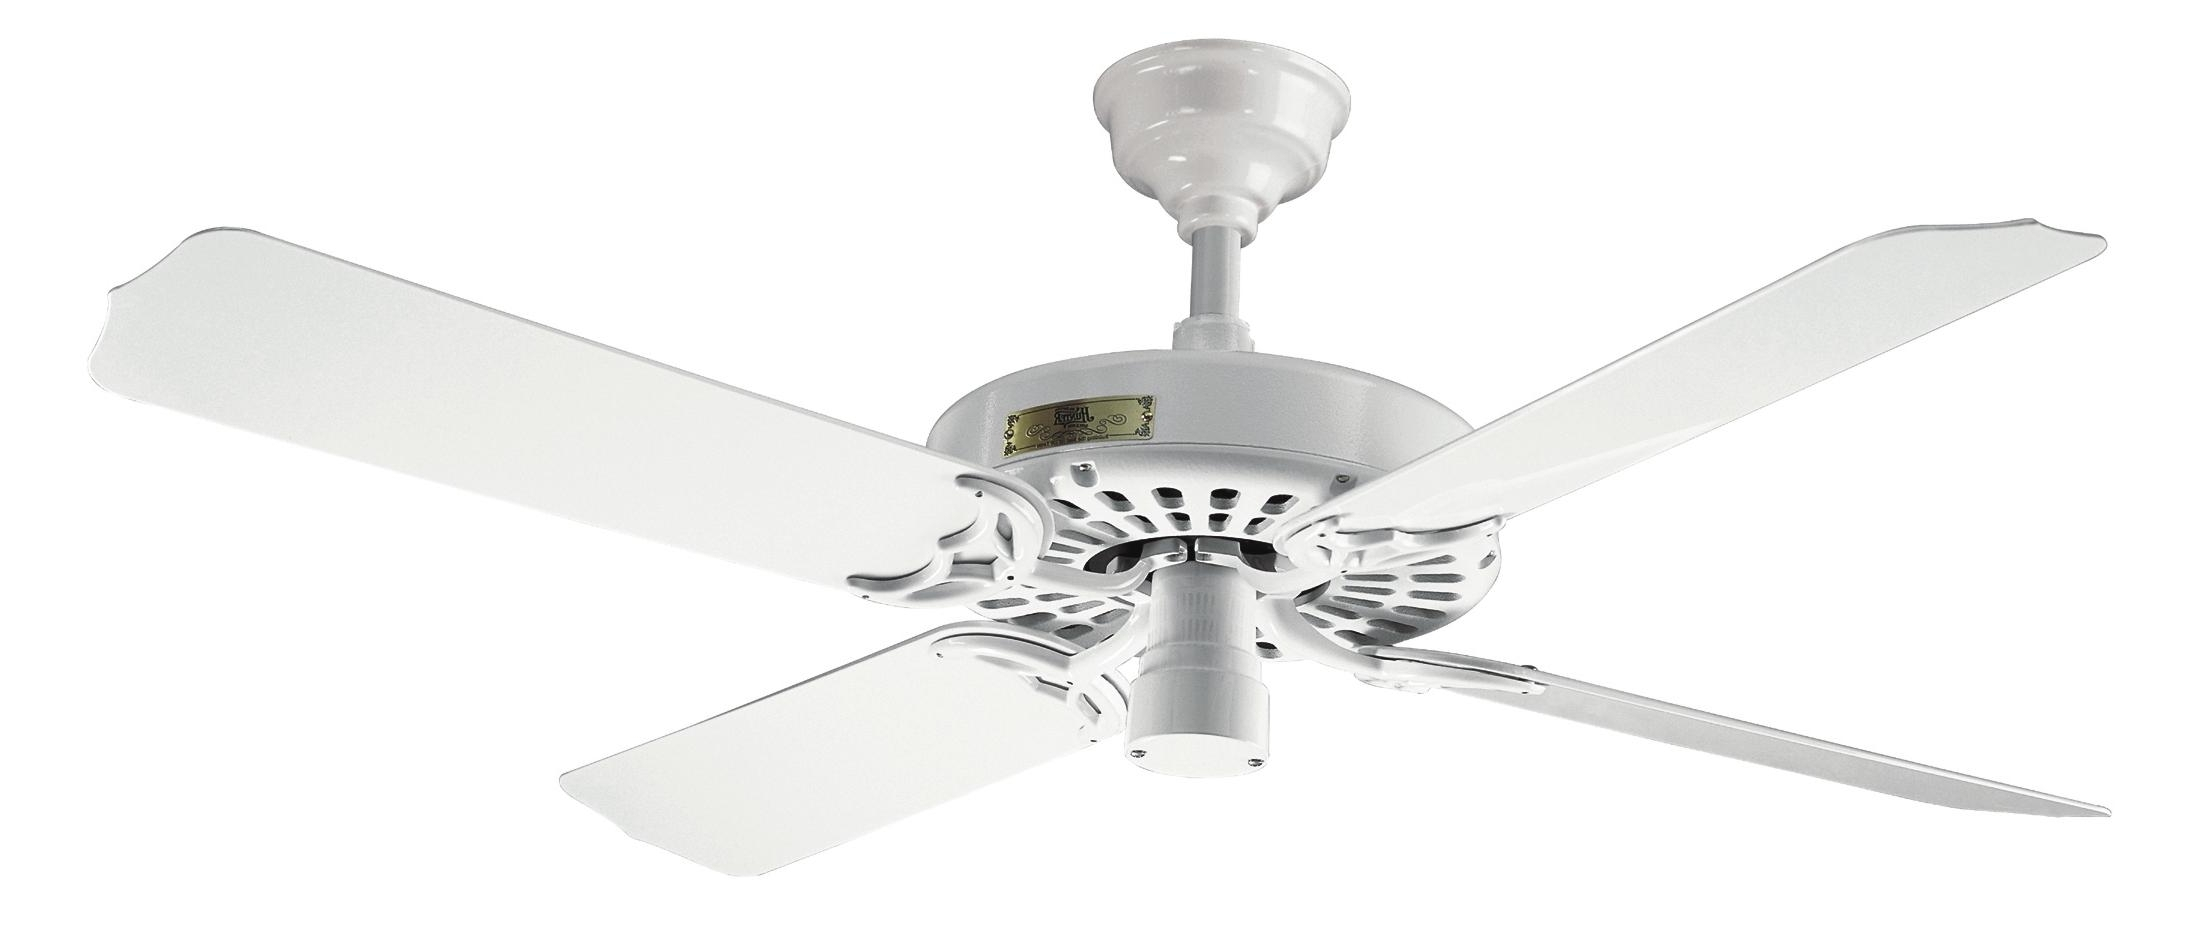 Popular Hunter Outdoor Original White Ceiling Fan 25602 In White, Best Throughout White Outdoor Ceiling Fans (View 16 of 20)